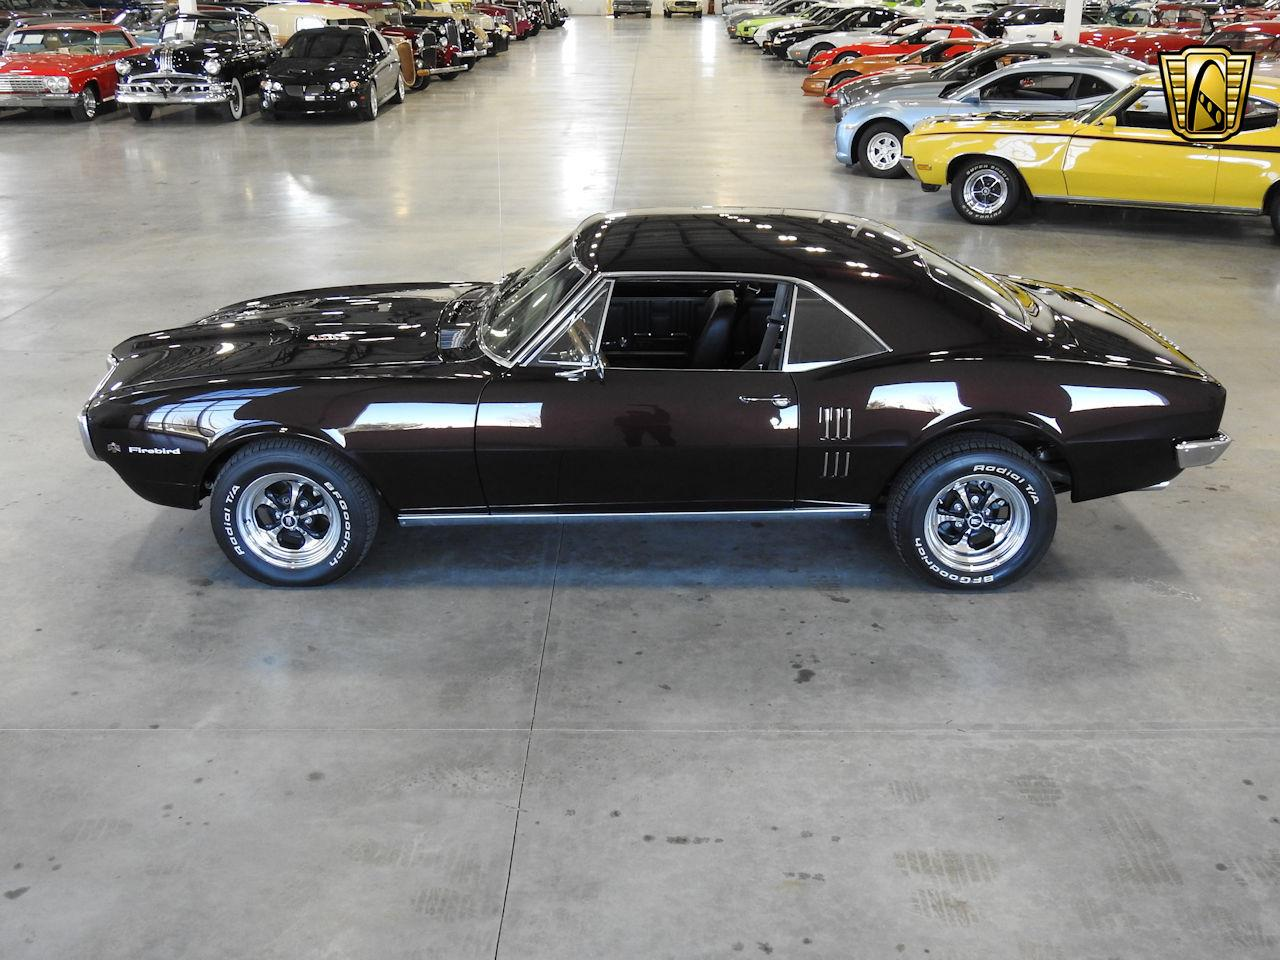 Large Picture of 1967 Pontiac Firebird located in Wisconsin Offered by Gateway Classic Cars - Milwaukee - MFCU